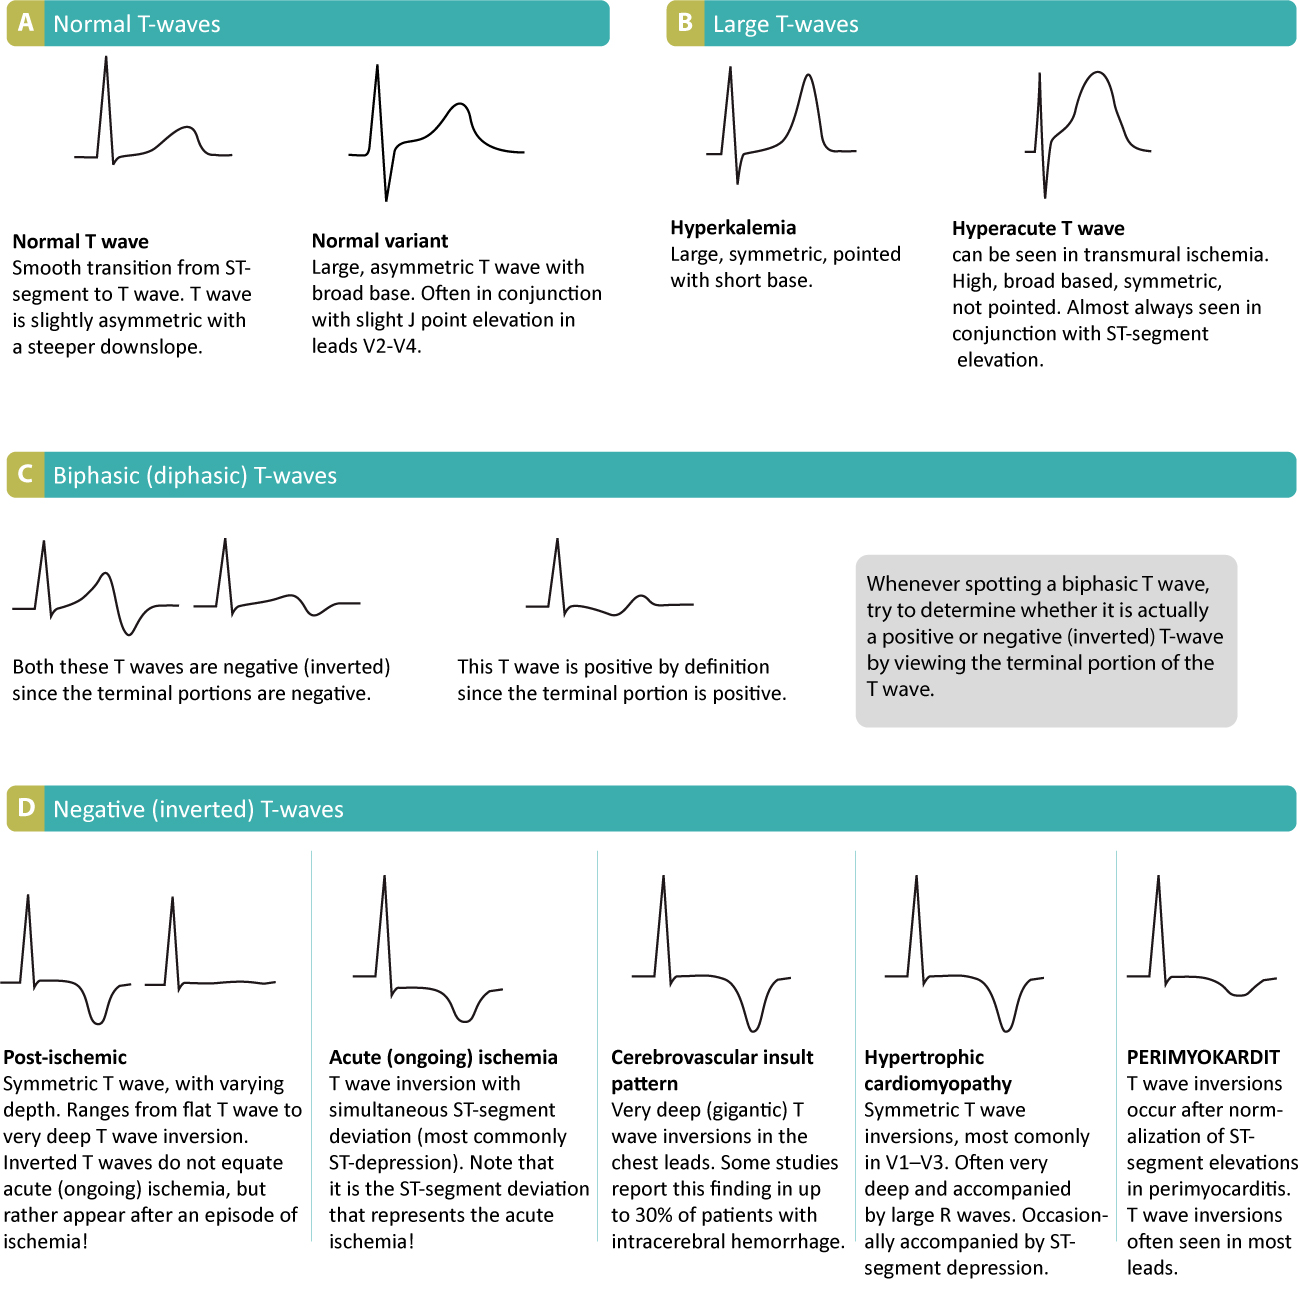 Figure 2. Various T-wave abnormalities, including T-wave changes related to myocardial ischemia.